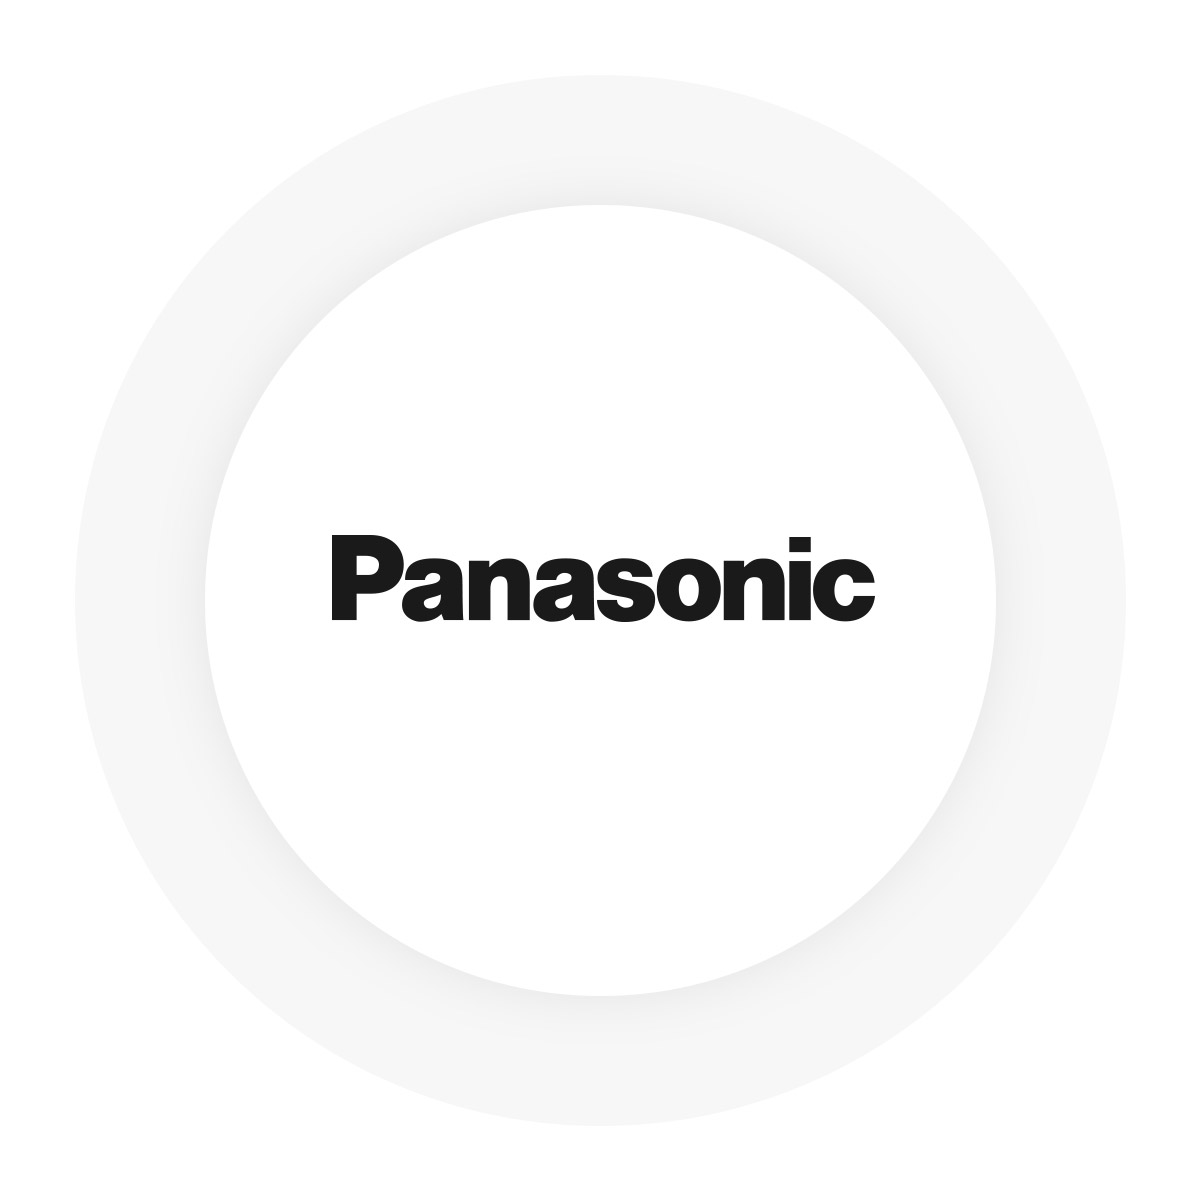 60 years of innovation - Panasonic has been the driving force in innovating indoor heating and cooling for more than 60 years now.